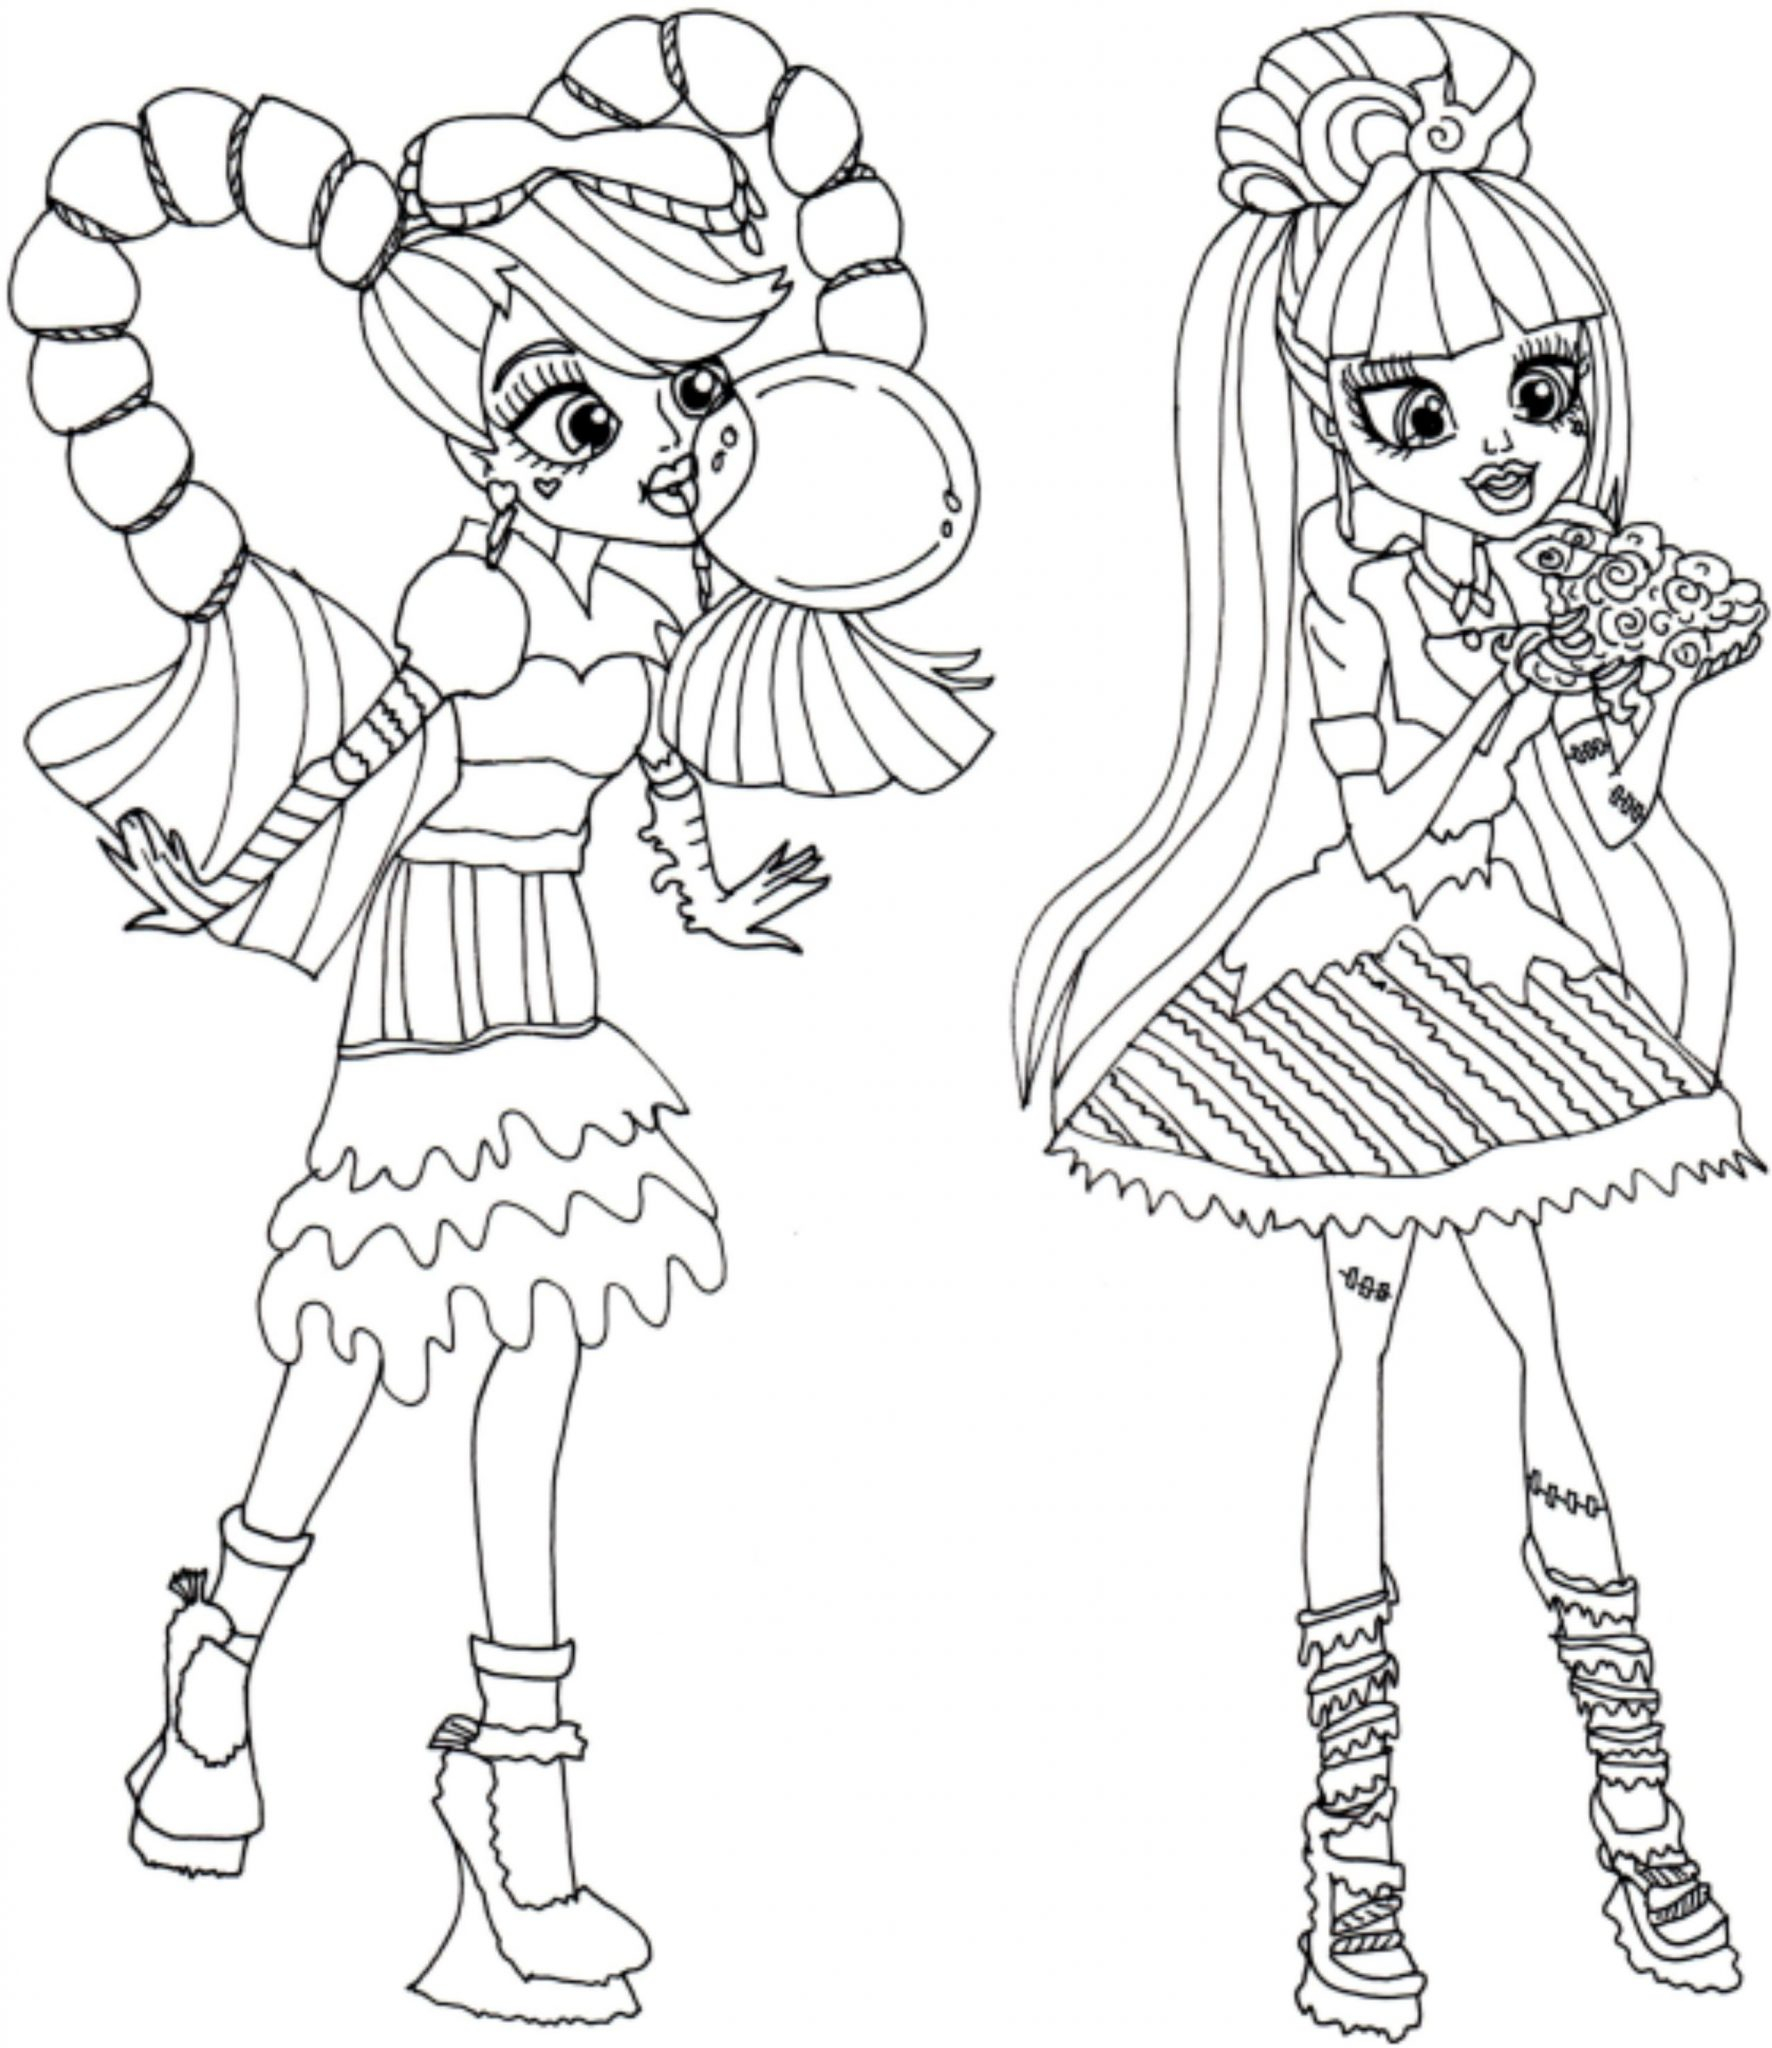 Inspiration Free Printable Monster High Coloring Pages Brand Boo Download Of Wydowna Spider by Elfkena On Deviantart to Print